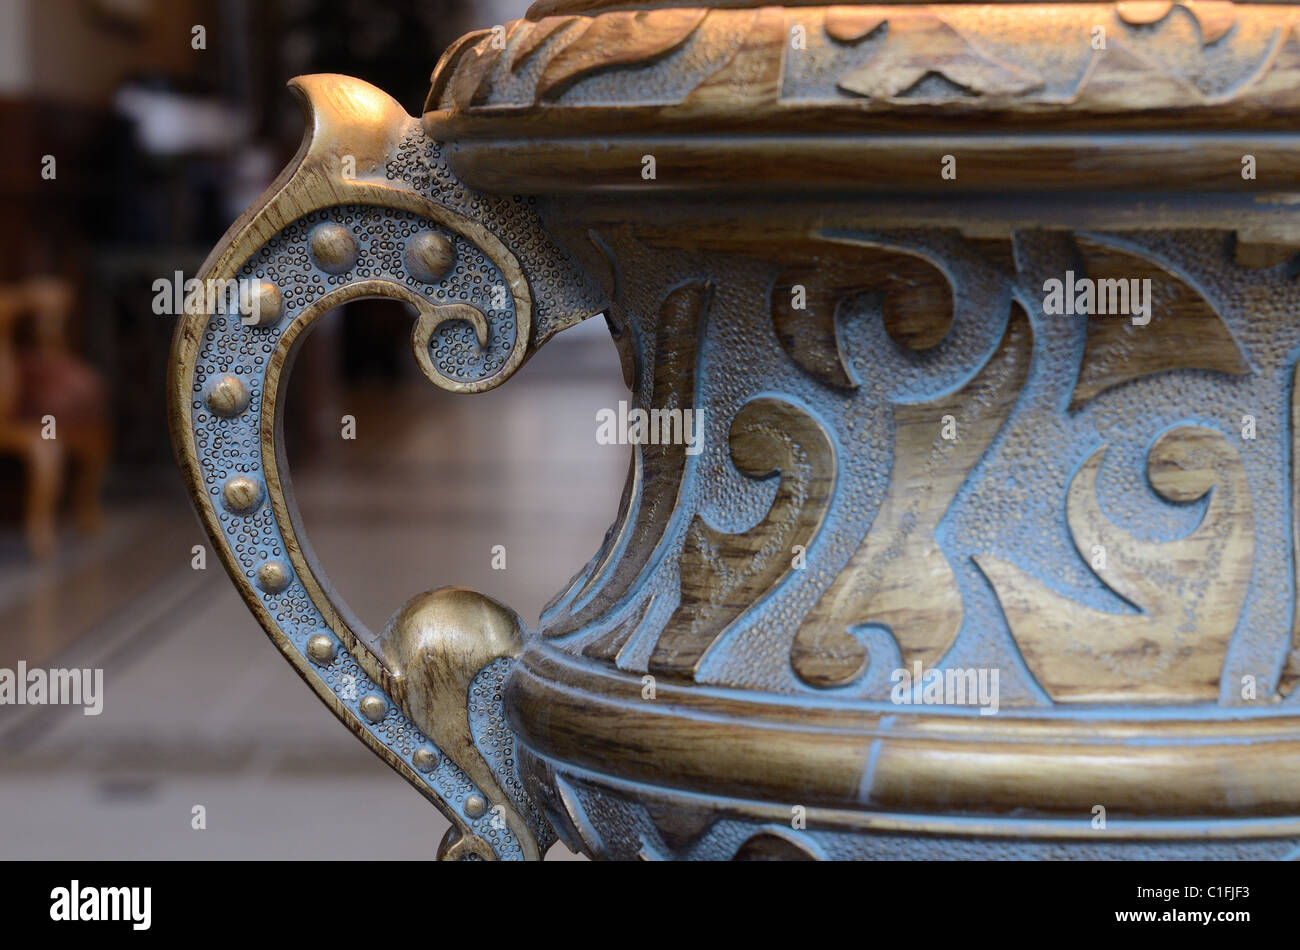 ornate lamp detail in a hotel lobby interior - Stock Image